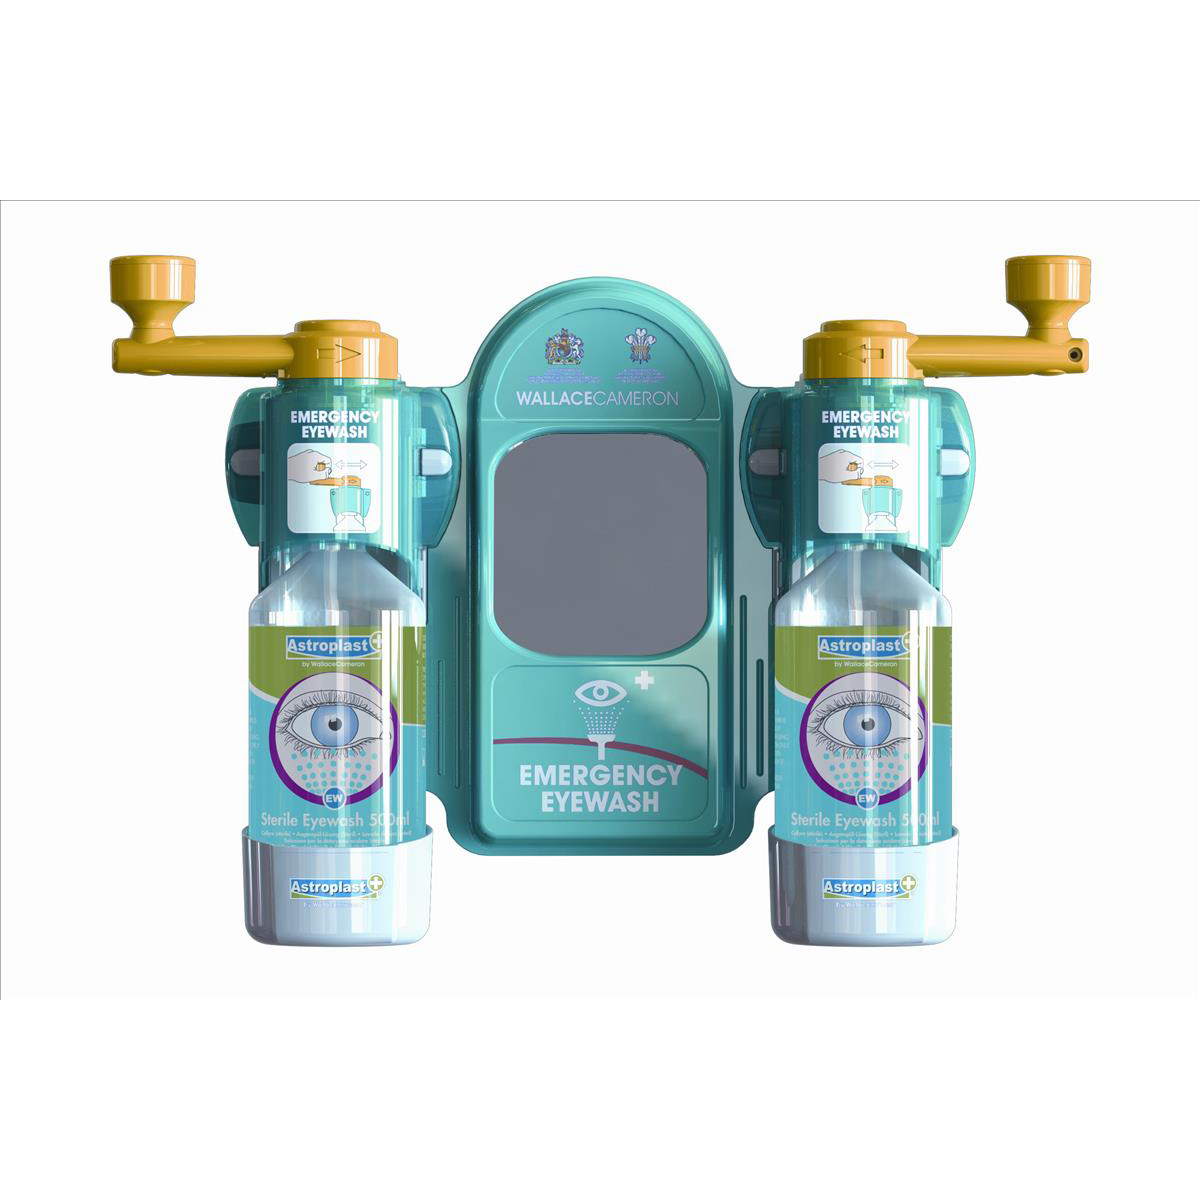 Wallace Cameron Eyewash Station Standard Mirror 2x Eyewash Bottle Ref 2402057